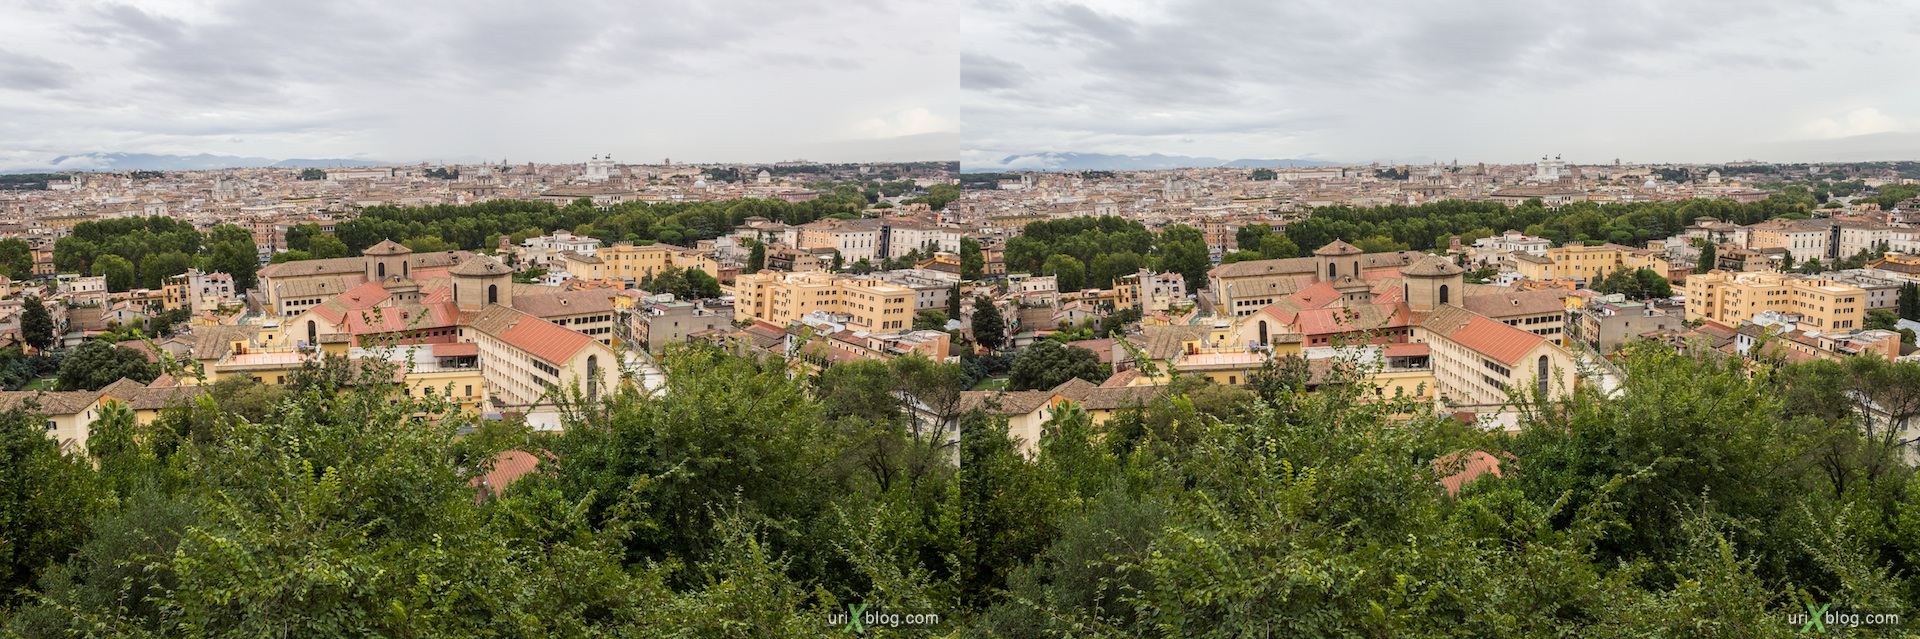 2012, Lighthouse of Gianicolo, Passeggiata del Gianicolo street, viewpoint, panorama, trees, city, Rome, Italy, Europe, 3D, stereo pair, cross-eyed, crossview, cross view stereo pair